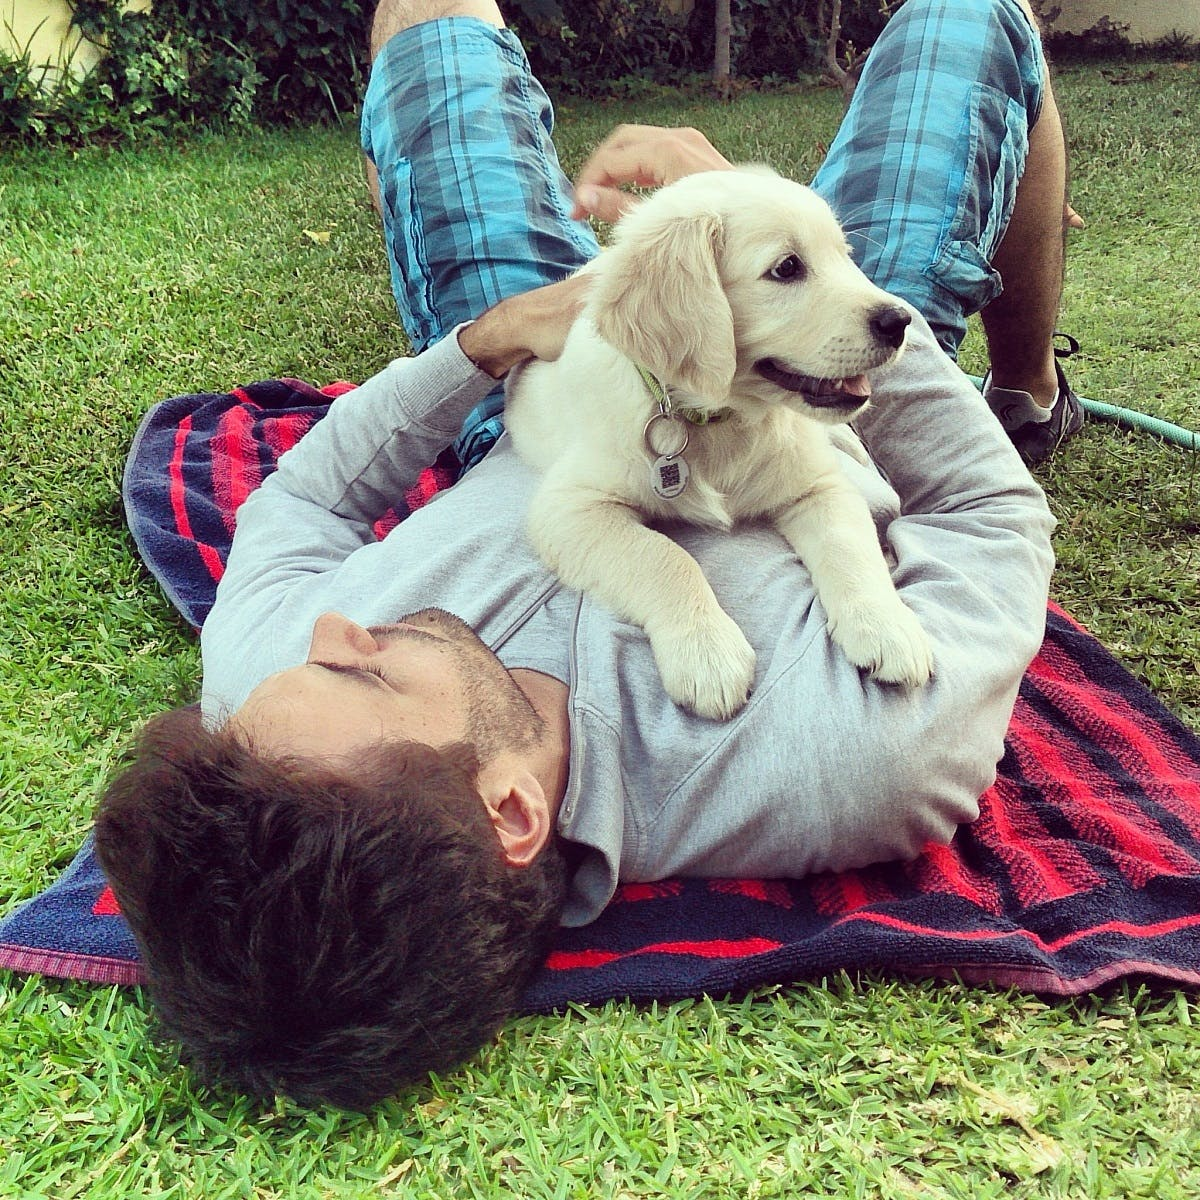 A man lying on a picnic blanket at the park cuddles his yellow Labrador puppy